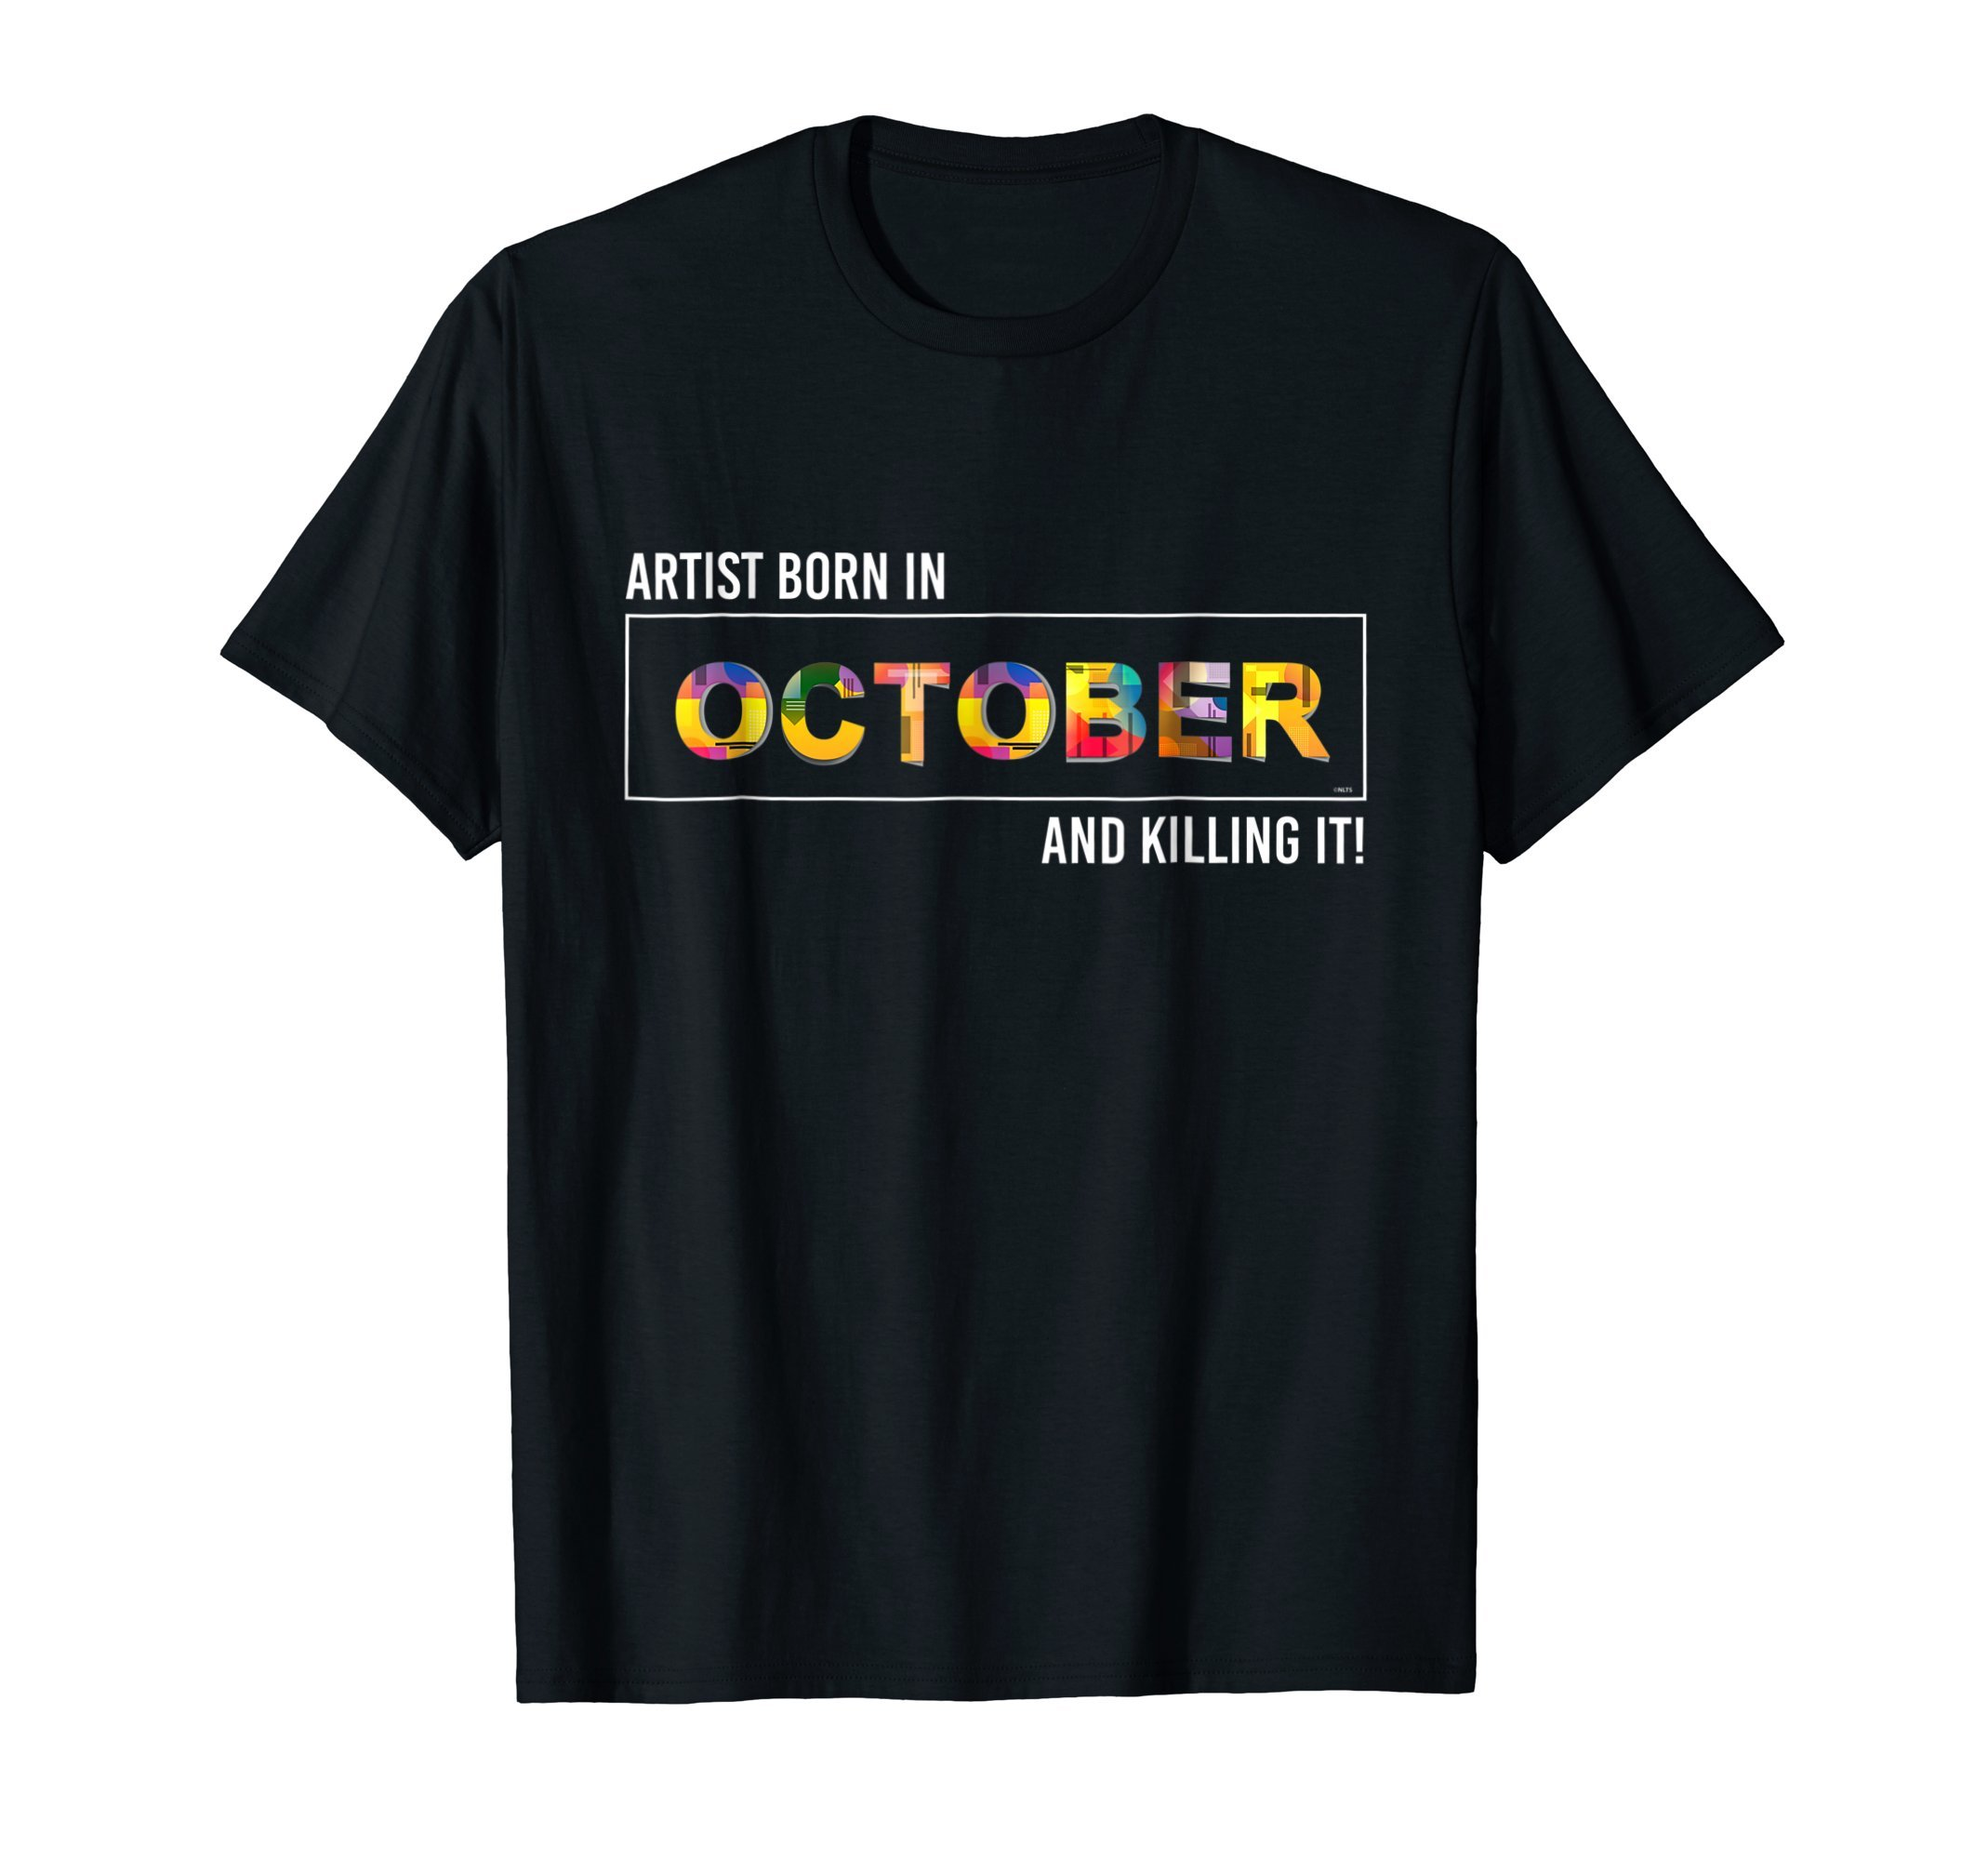 Artist-born-in-October-and-killing-it-T-Shirt-Shirt-Tee